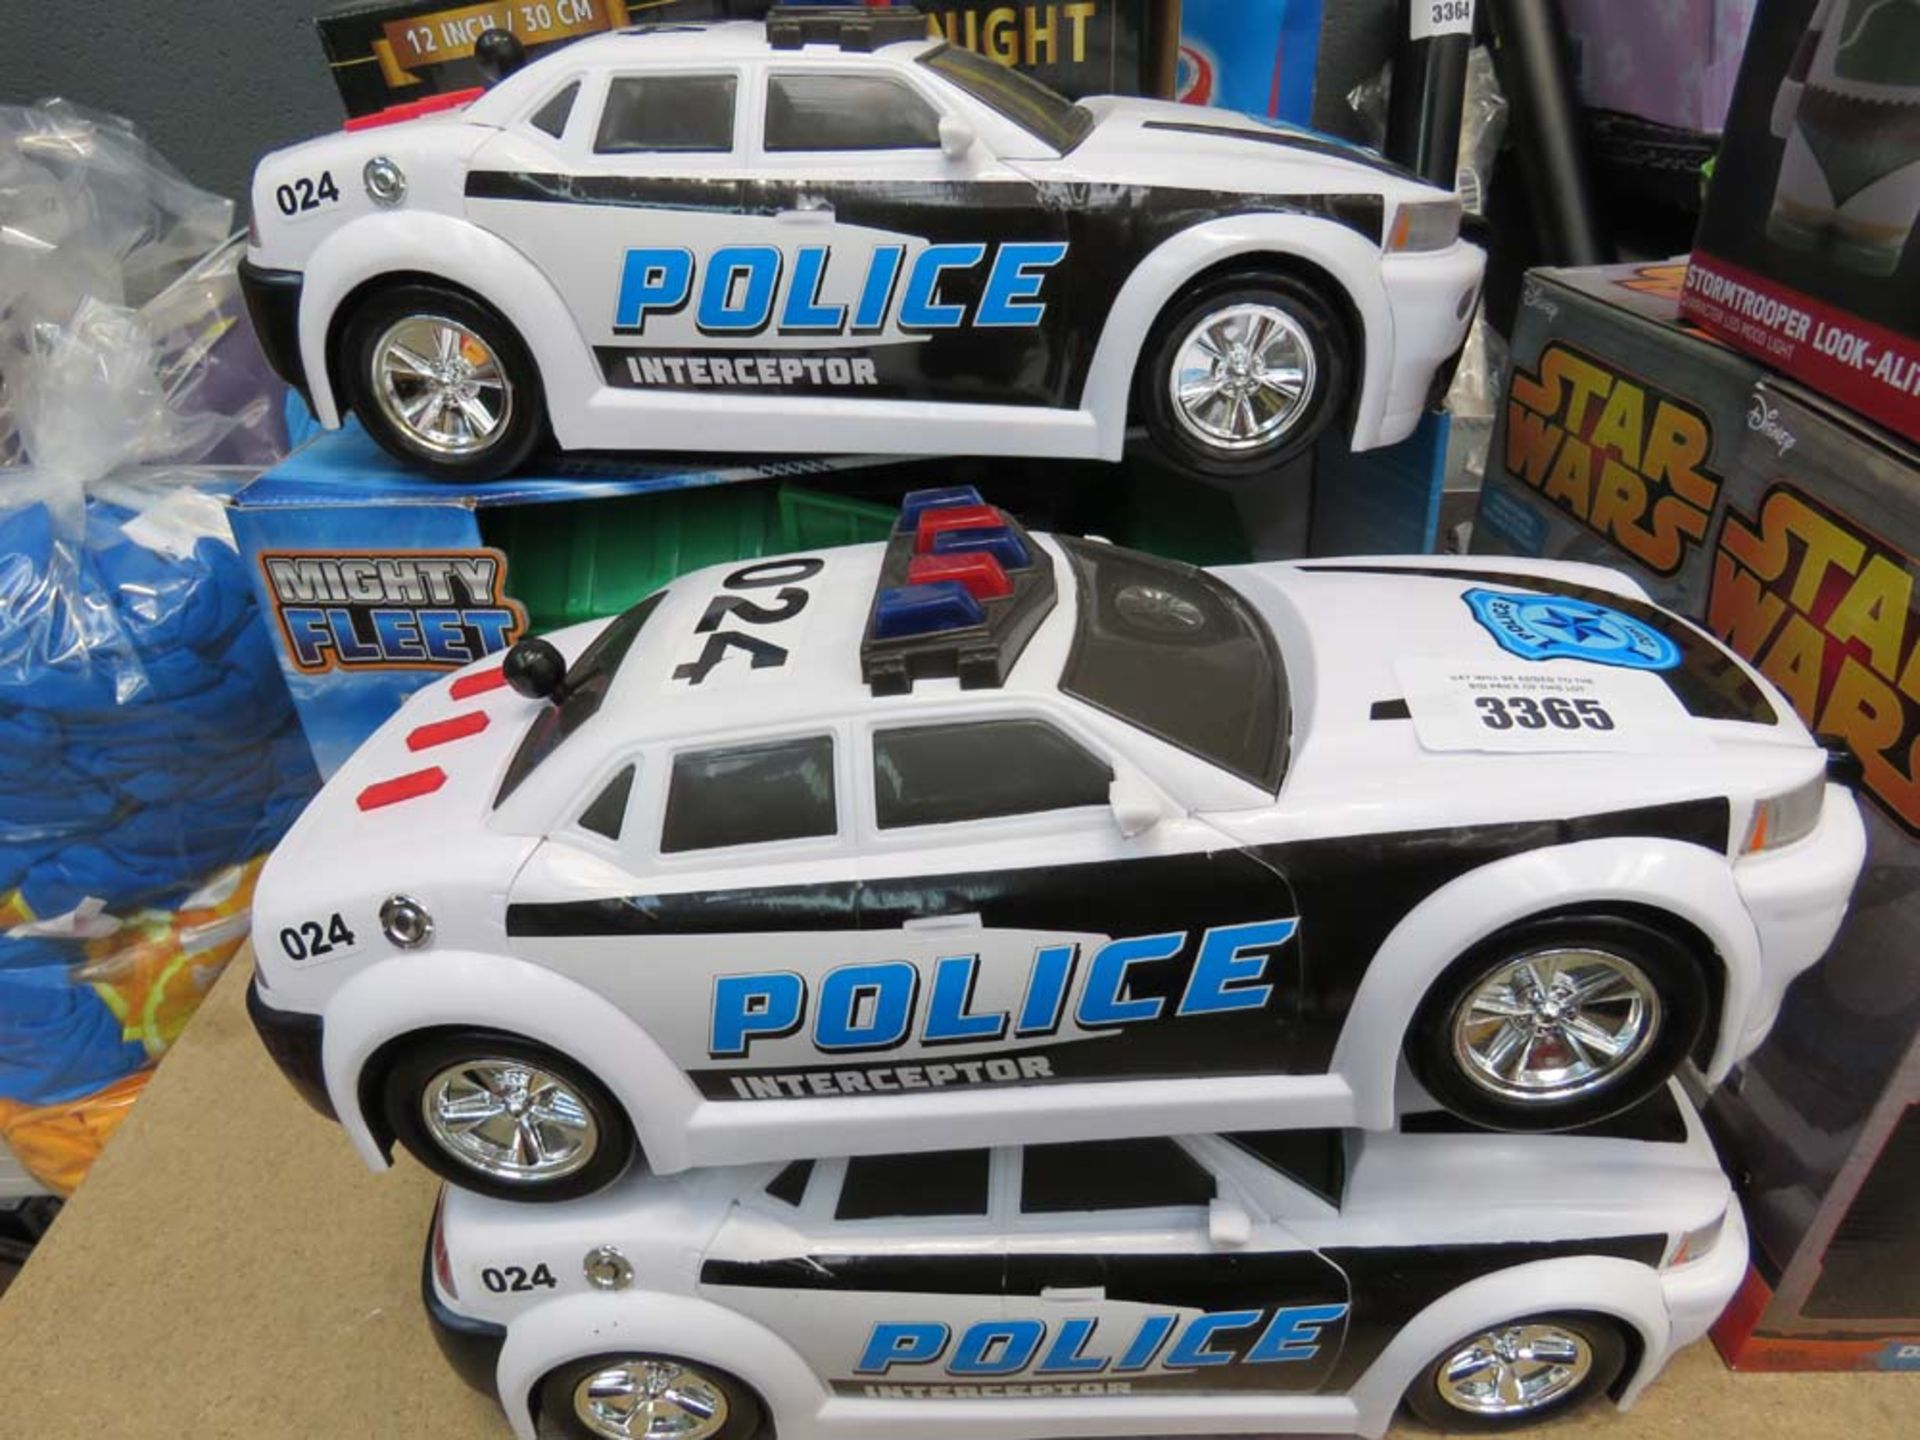 3 toy police cars and bin lorry